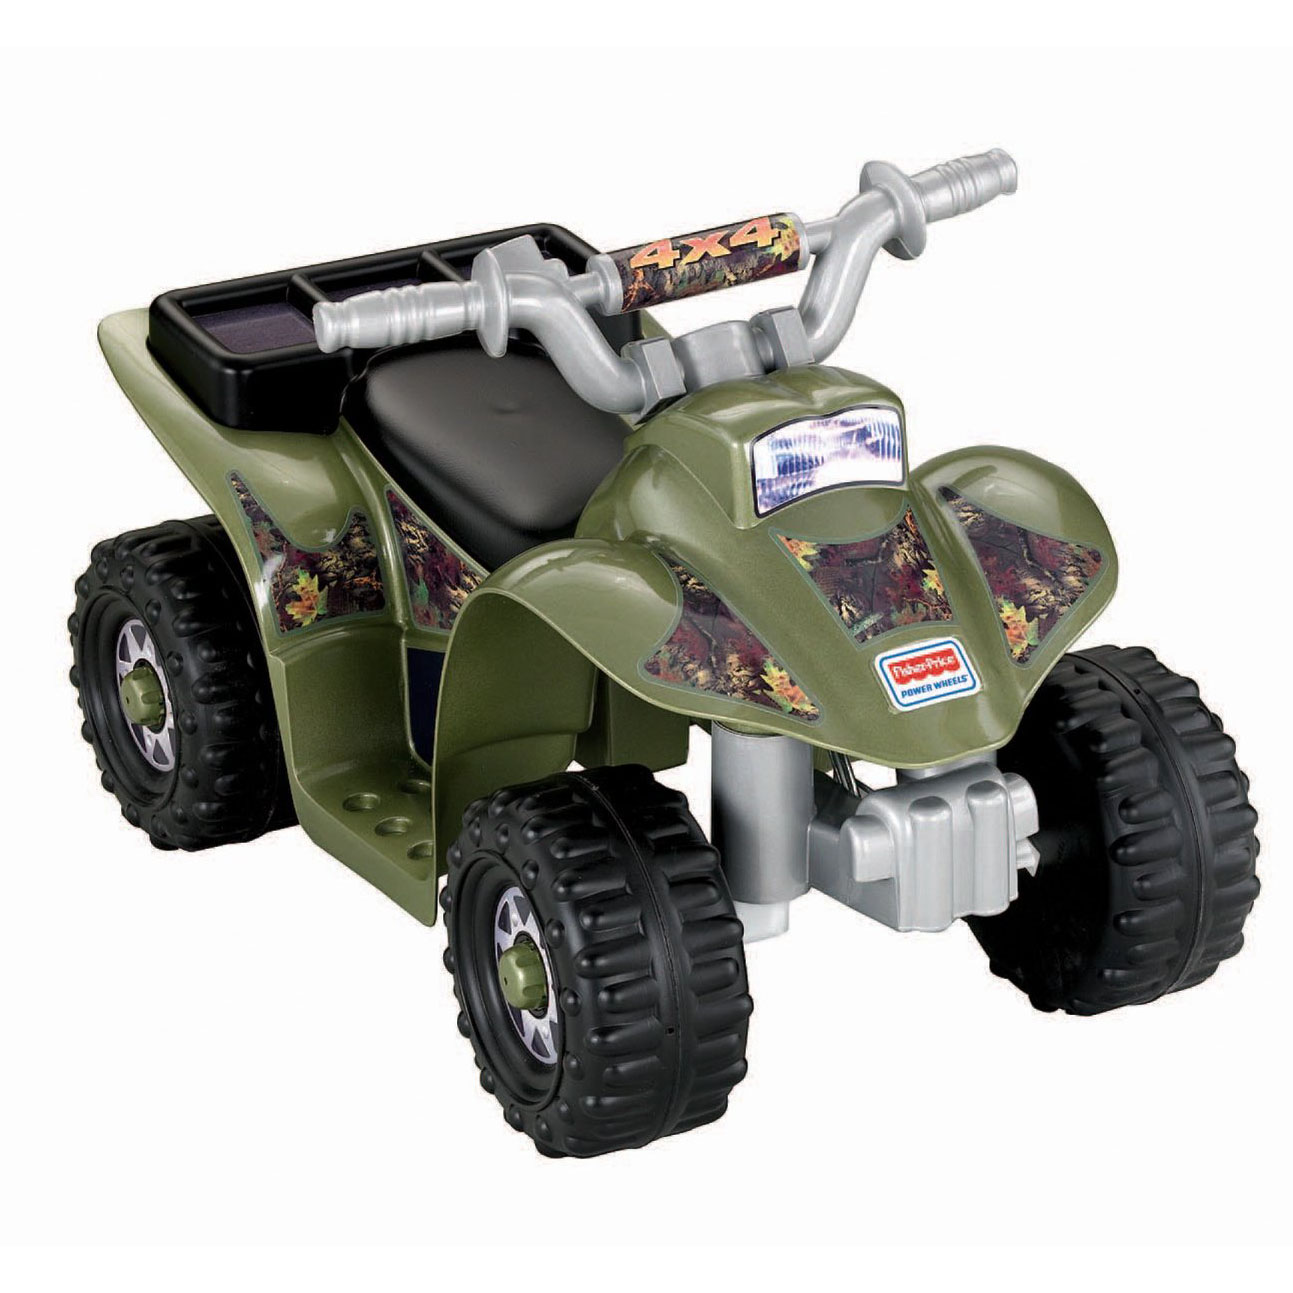 Fisher Price Power Wheels Lil' Quad 6V ATV Ride-On - Camo...